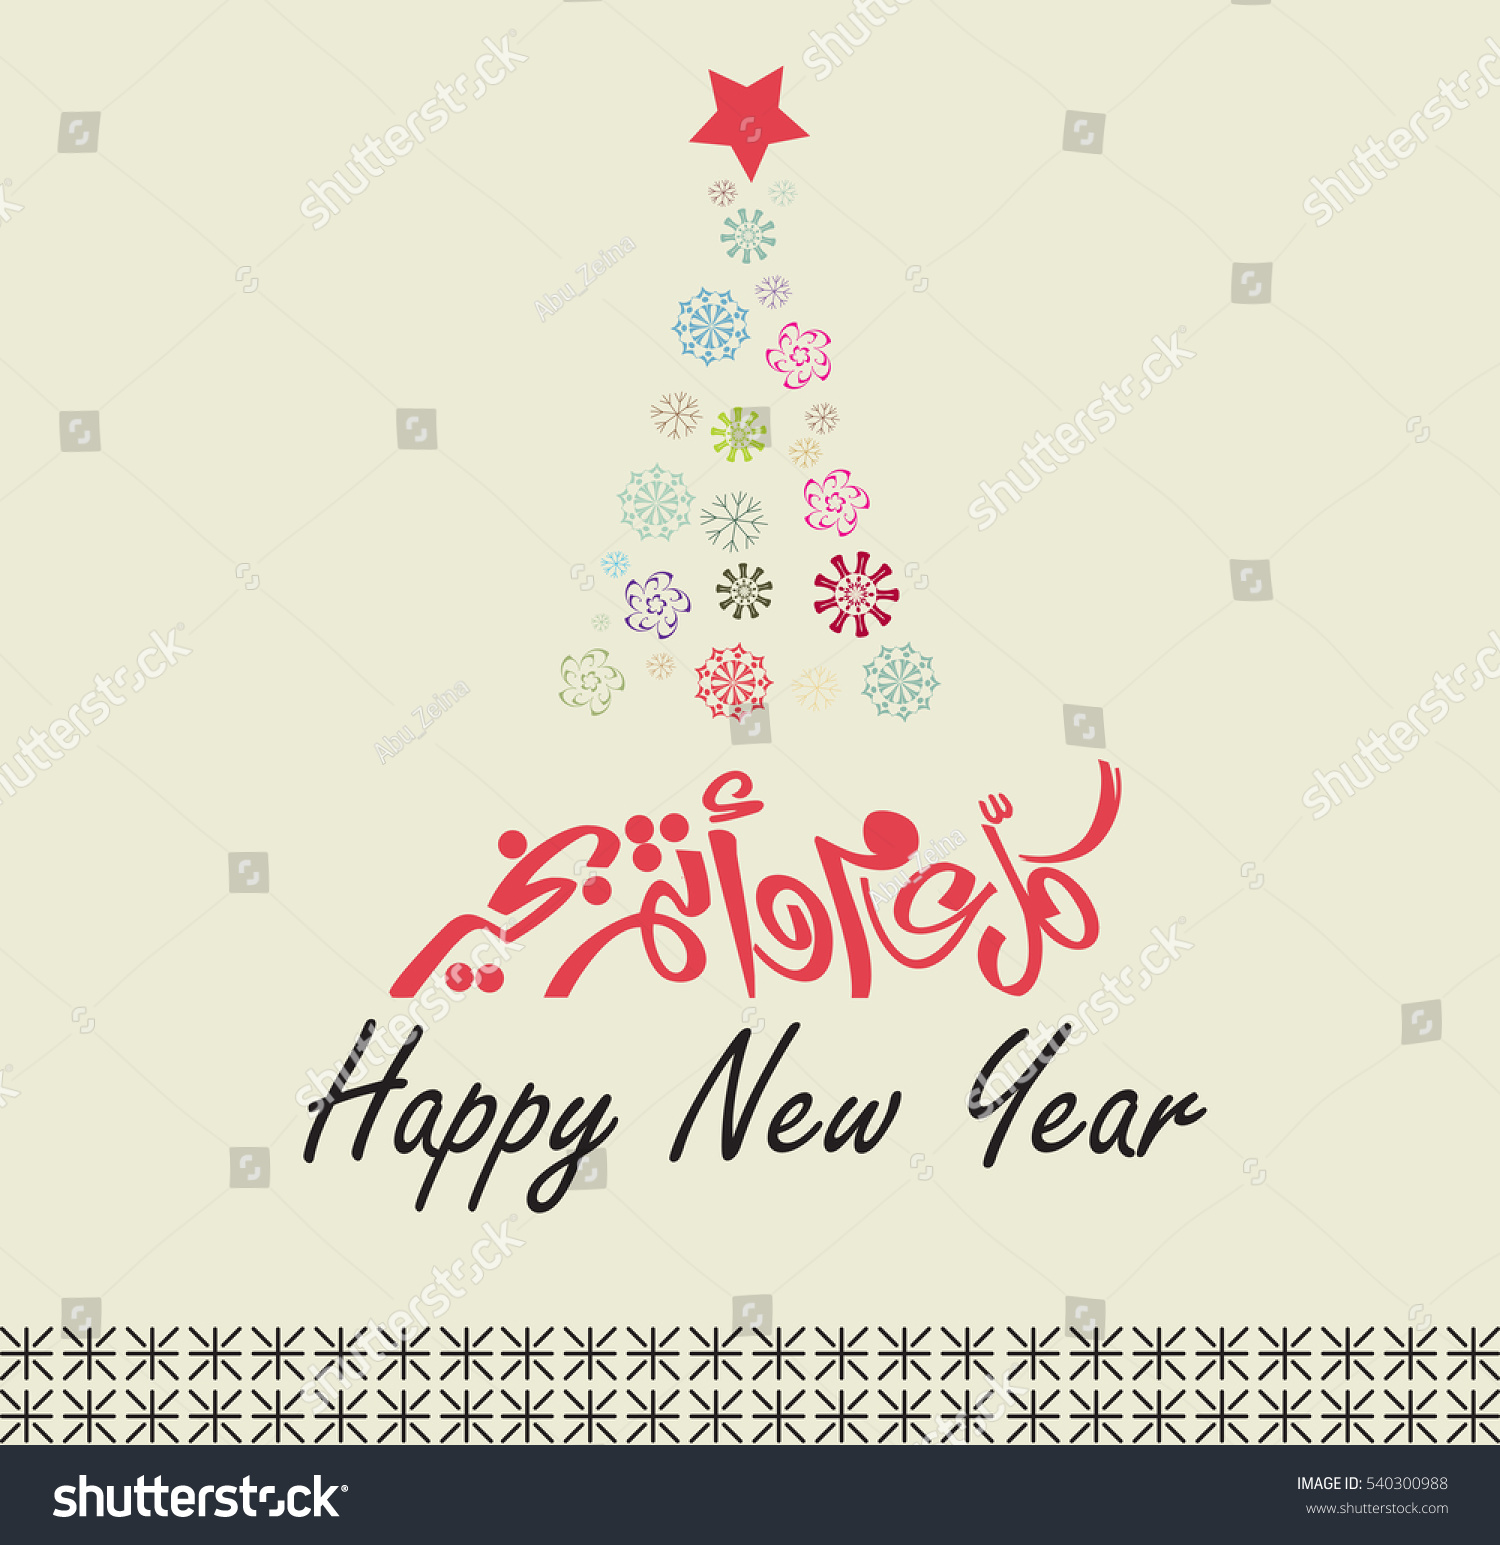 Happy New Year Greeting Card Traditional Stock Photo Photo Vector